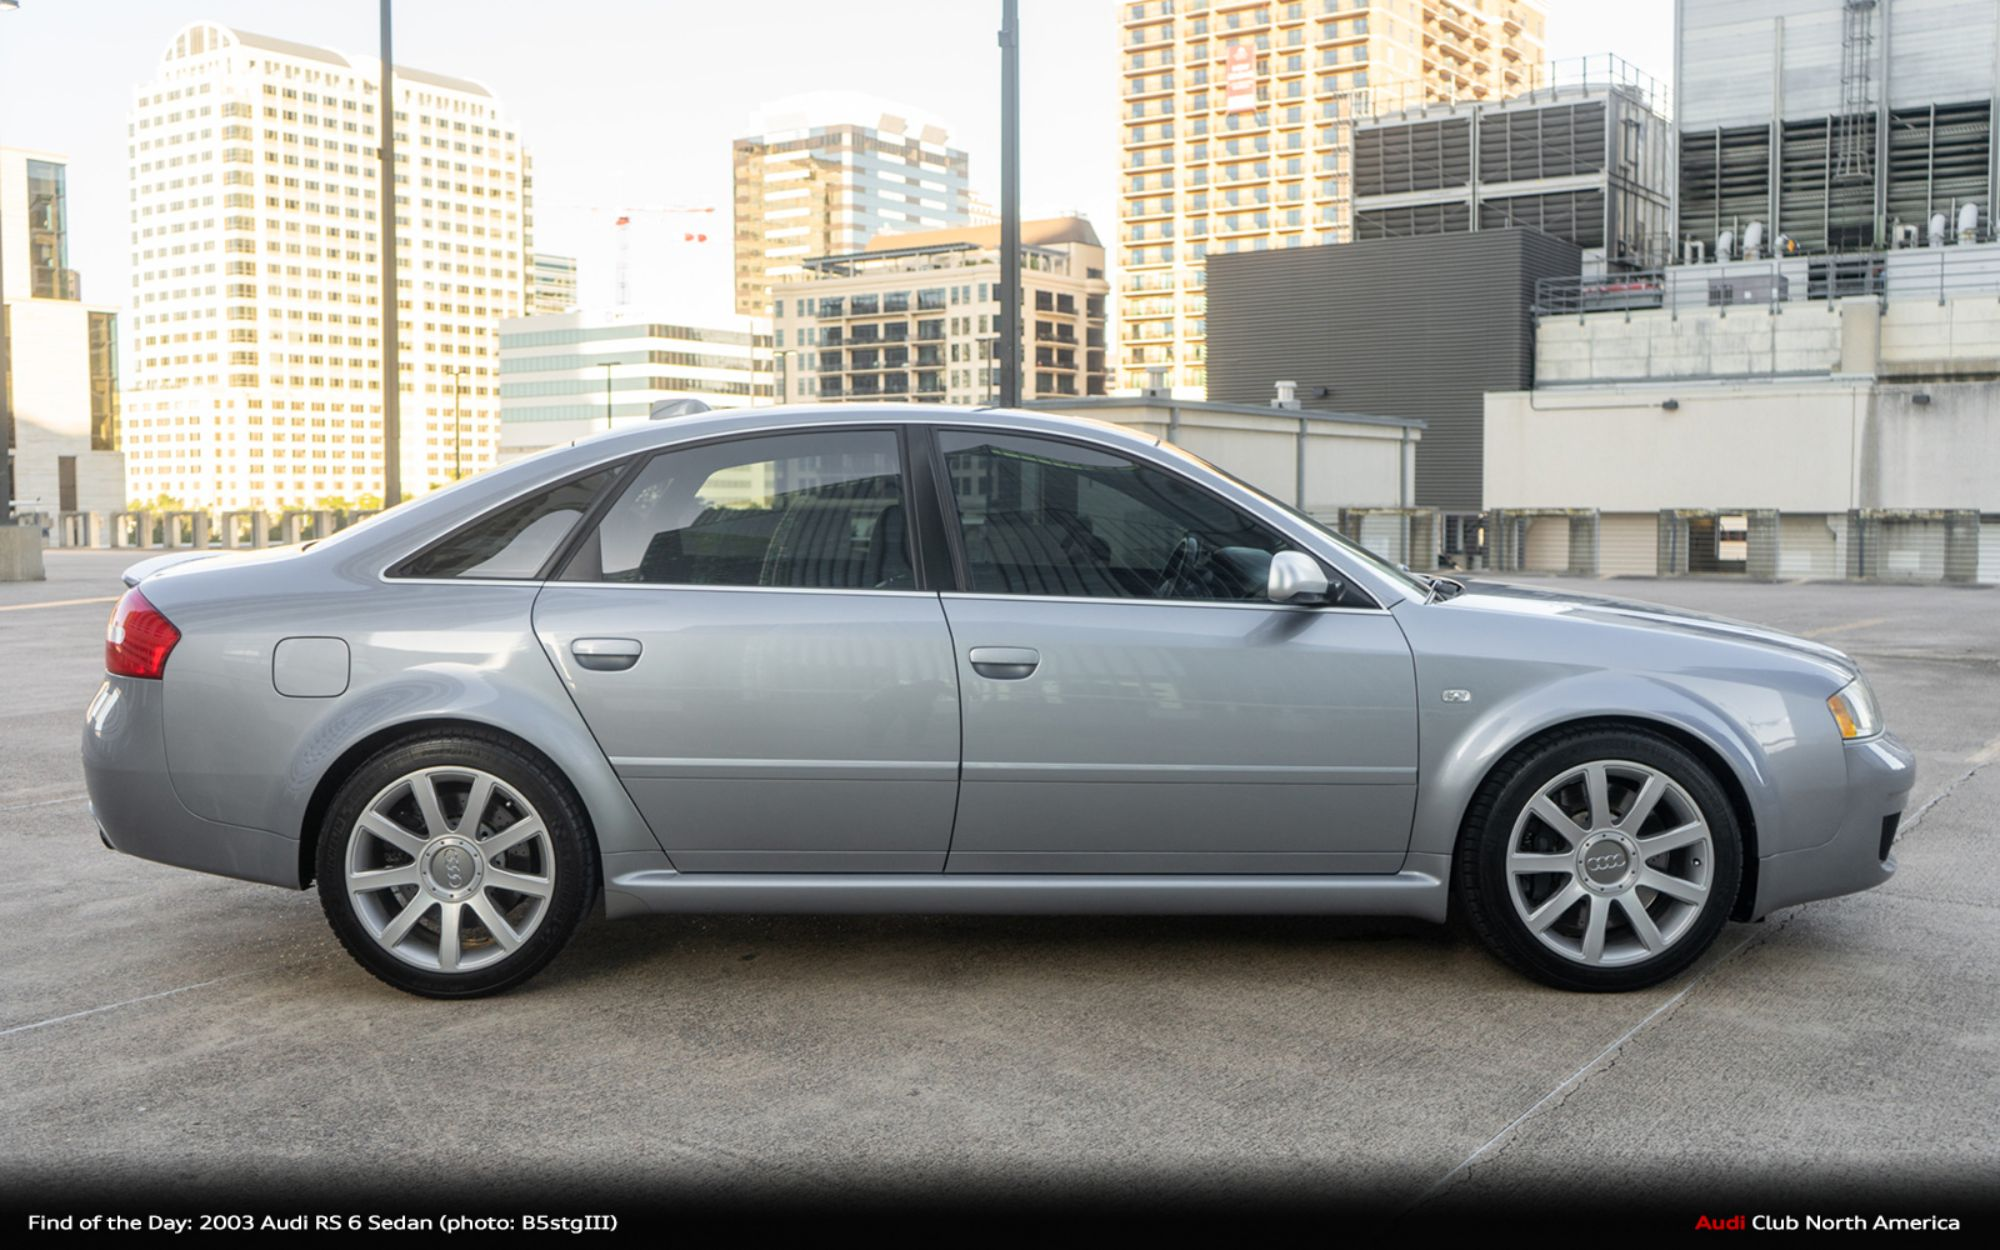 Find of the Day: 2003 Audi RS 6 Sedan